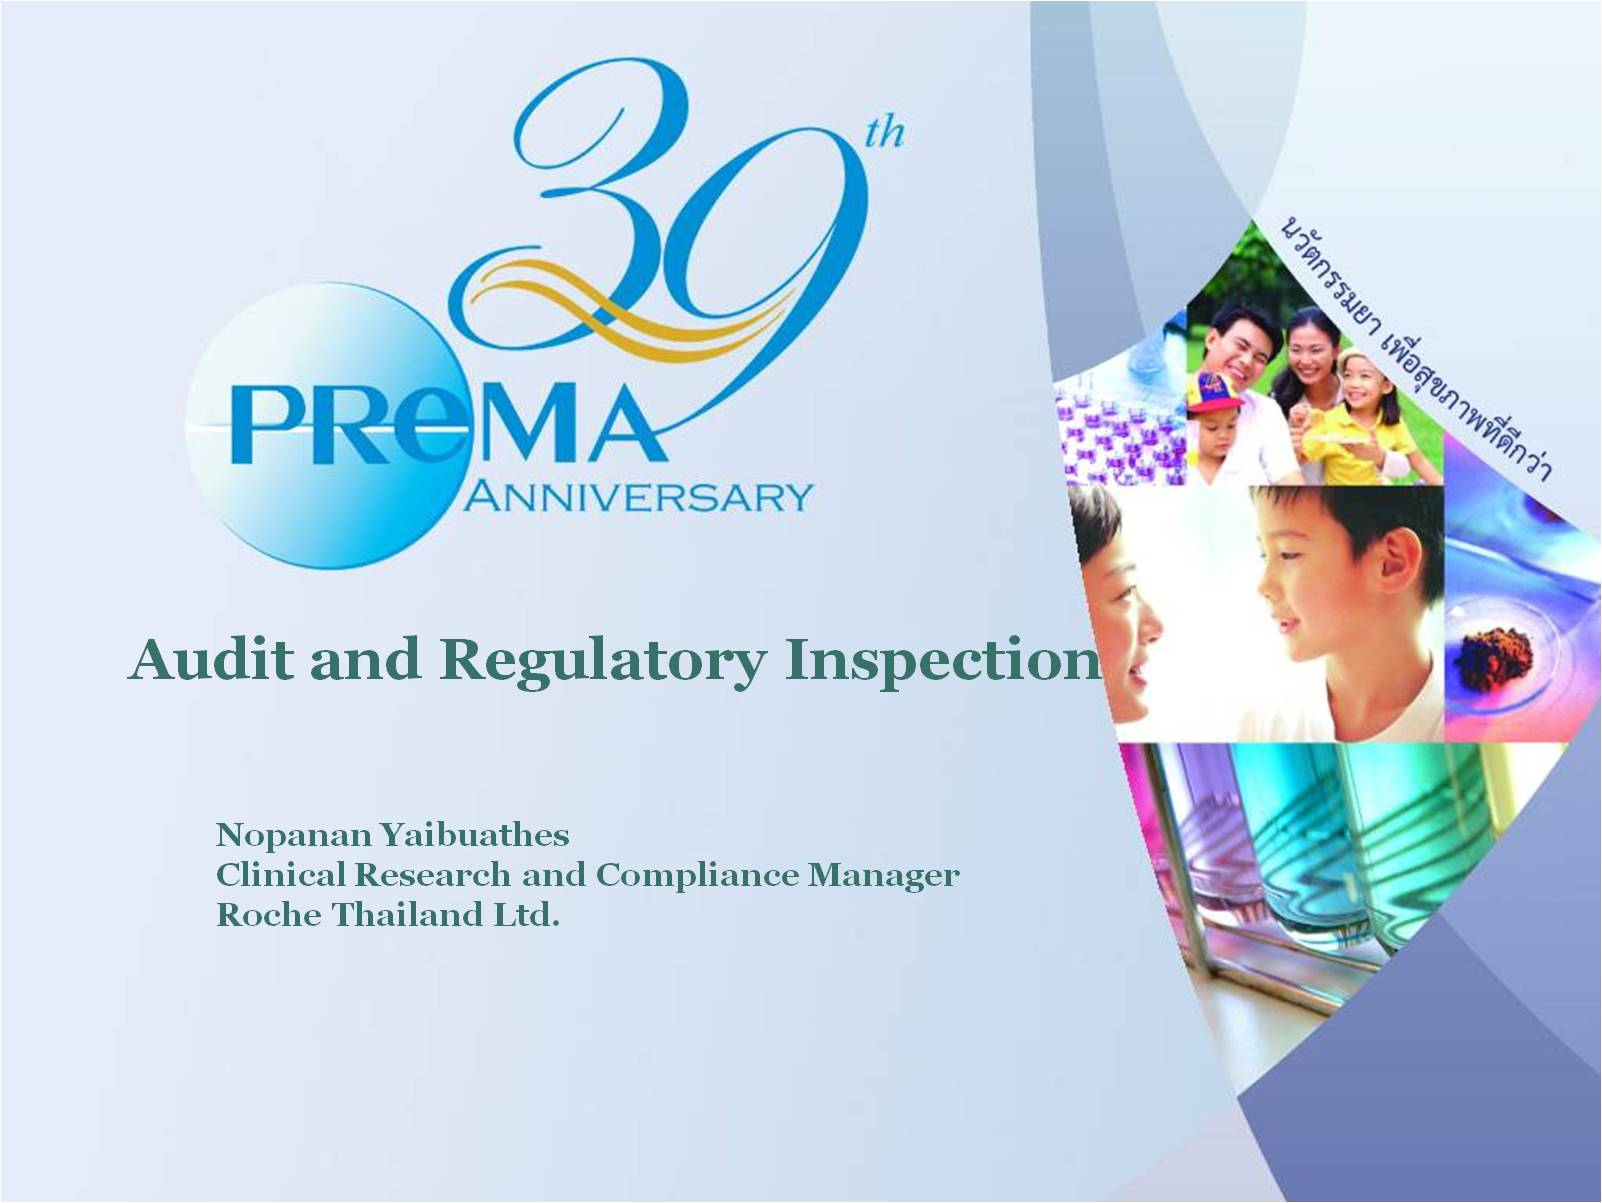 Audit and Regulatory